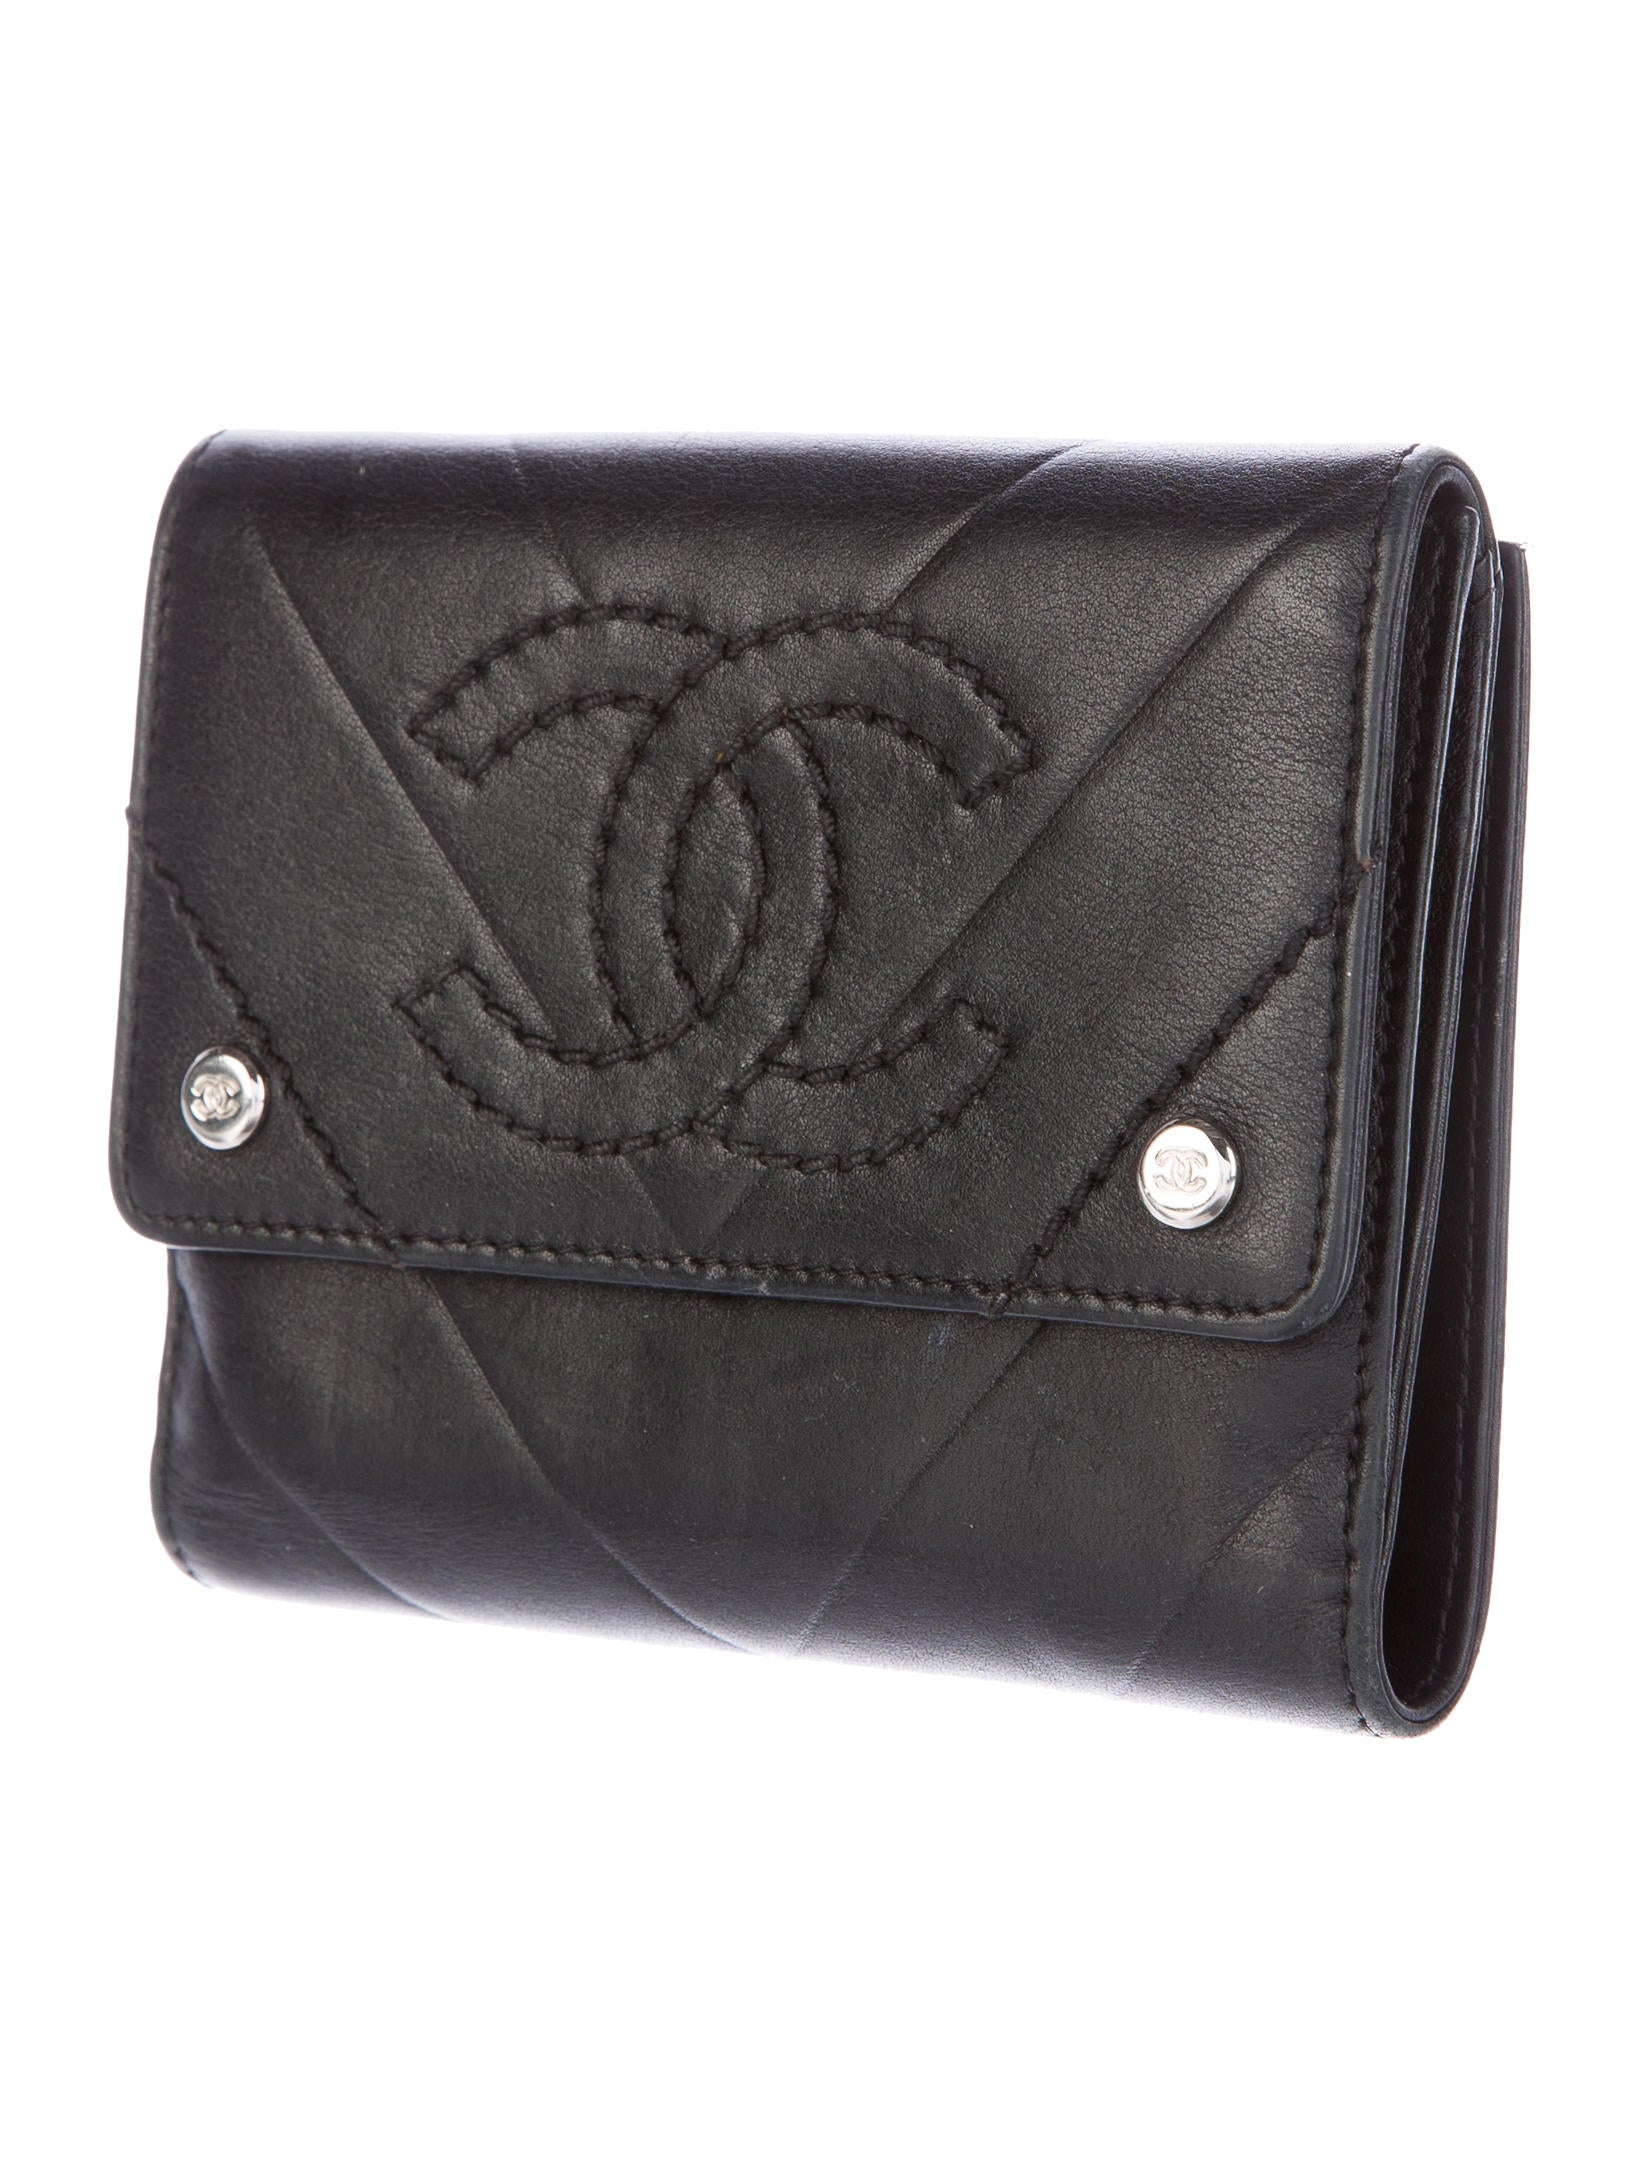 Chanel All Day Long French Purse - Accessories - CHA156366 ...